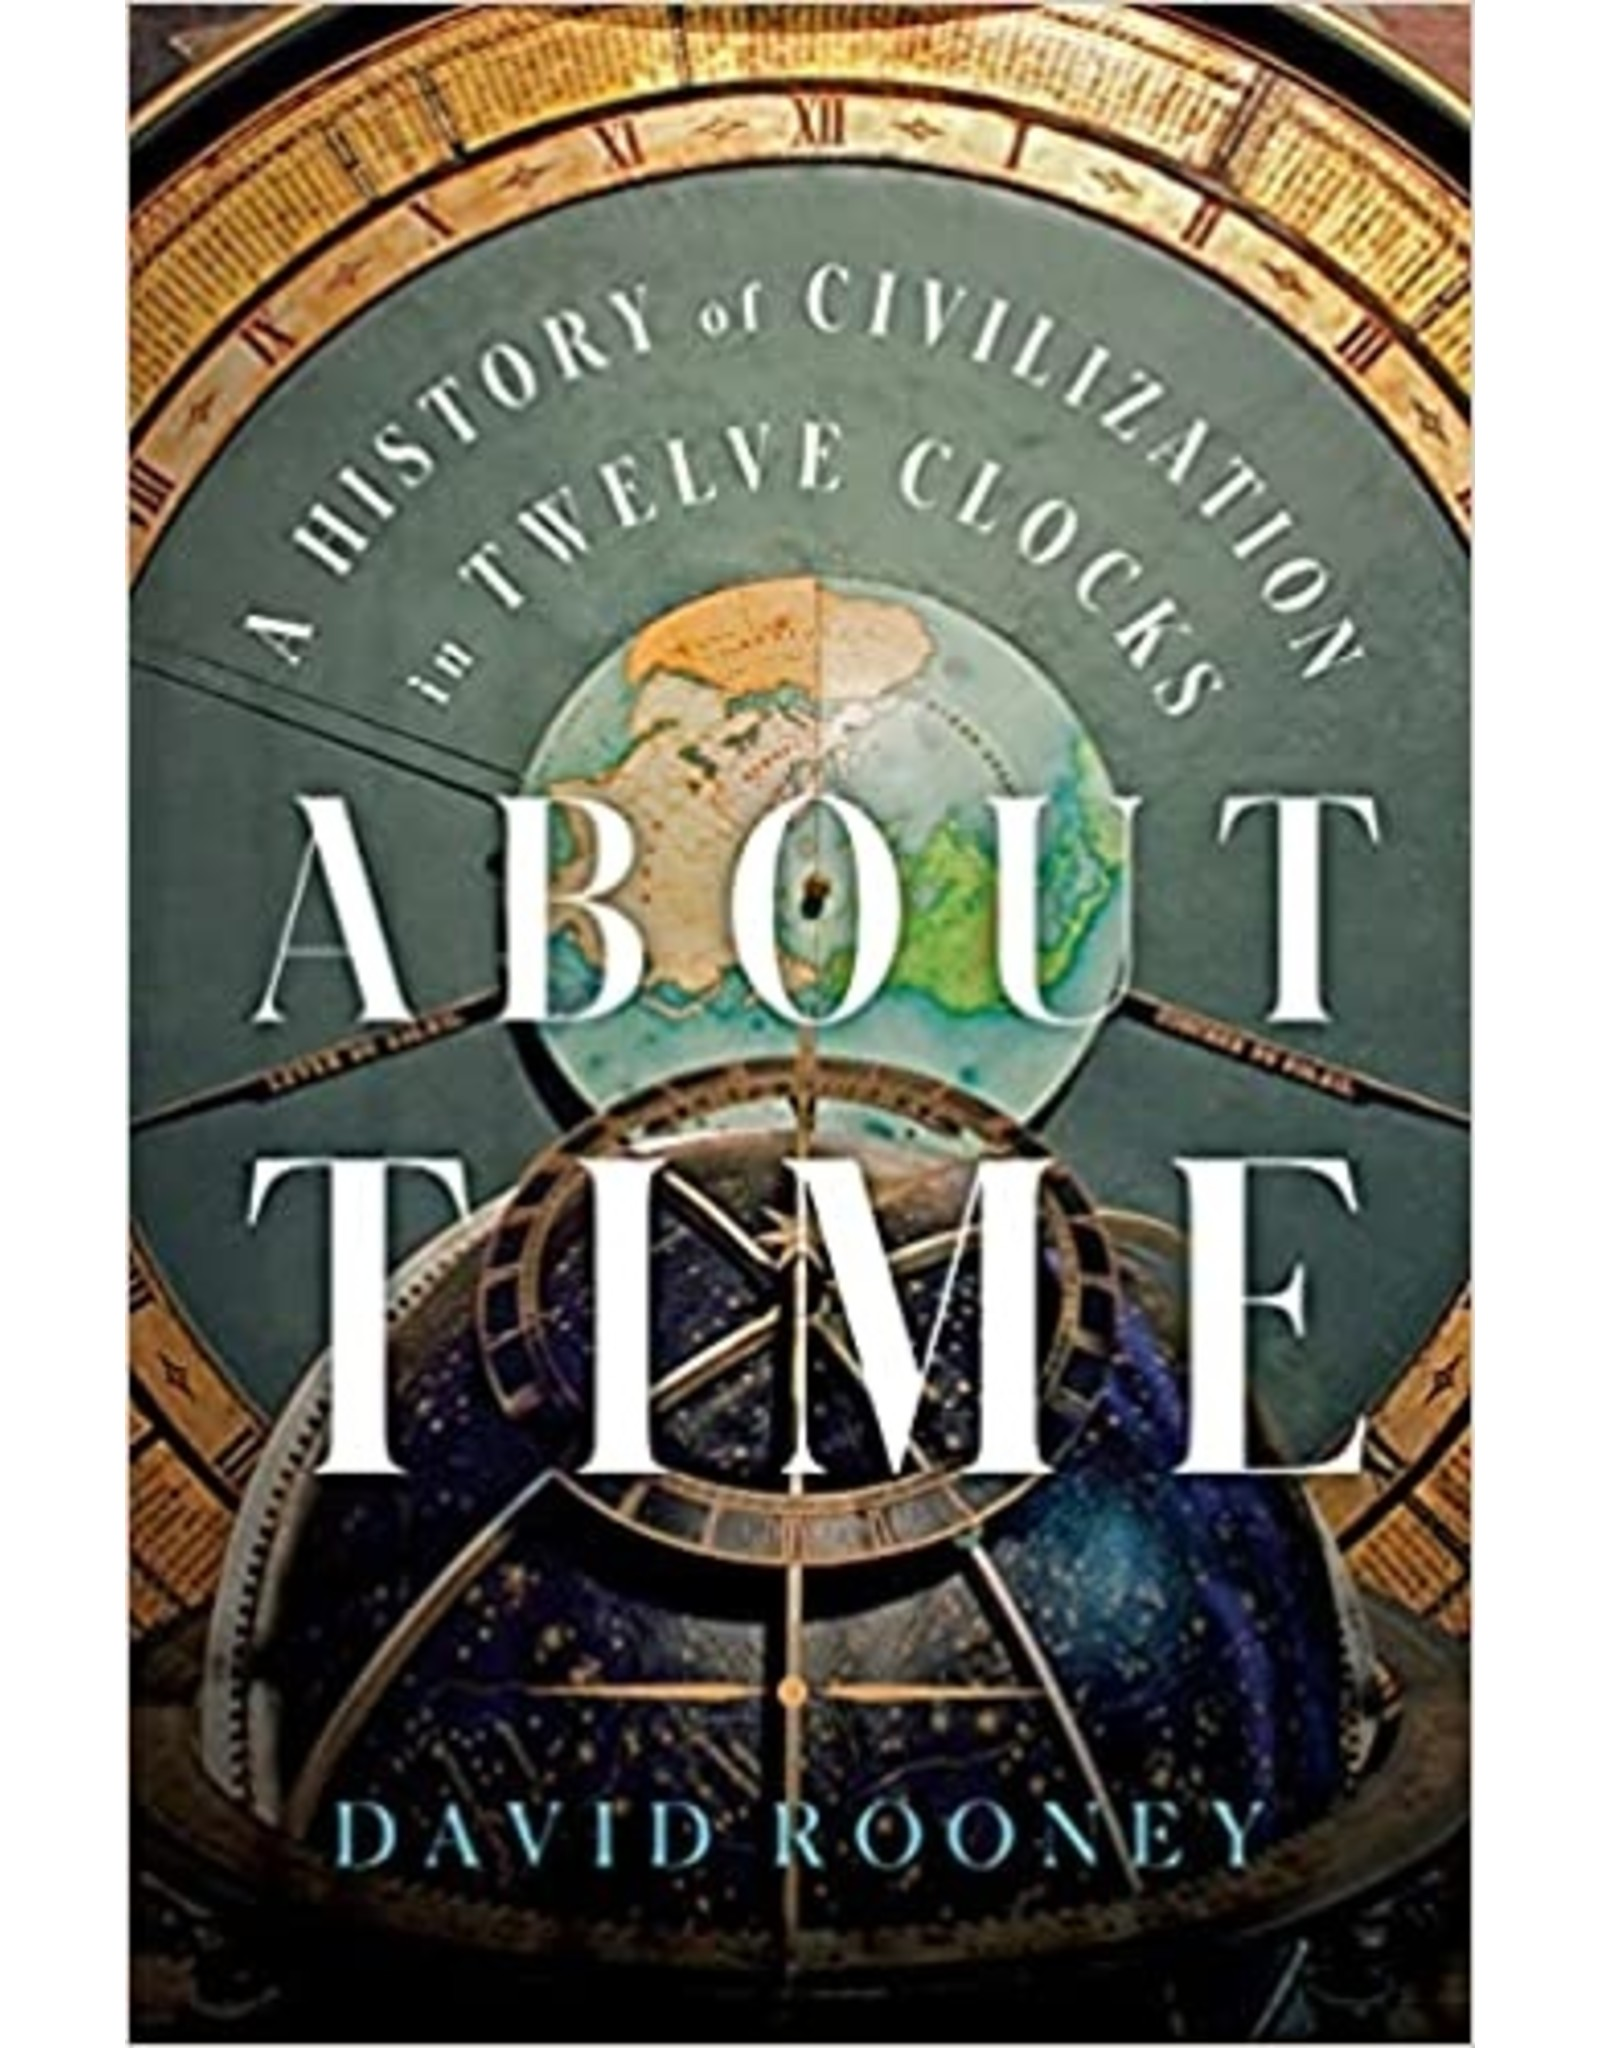 Books About Time: A History of Civilization in Twelve Clocks by David Rooney